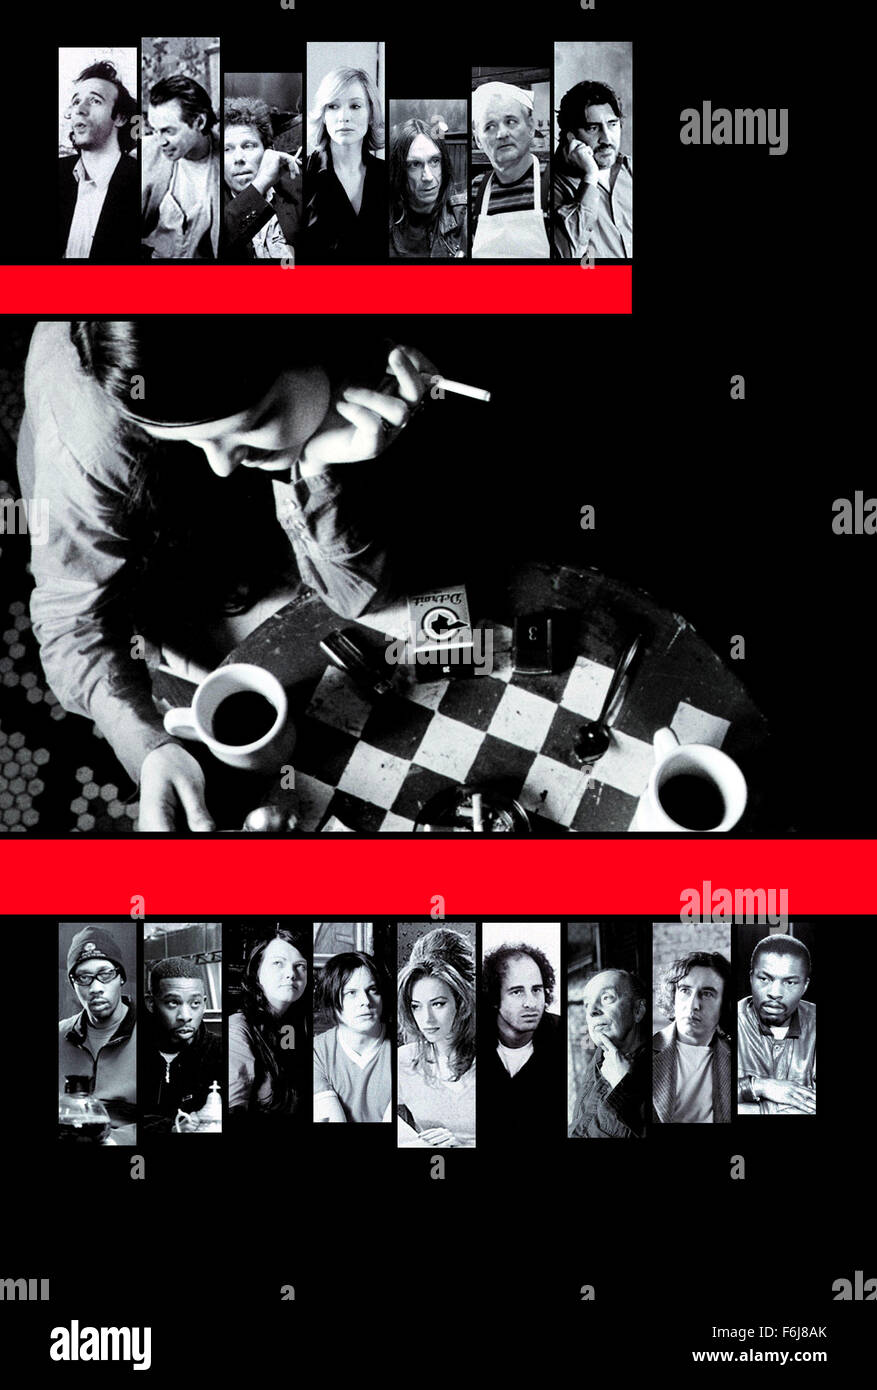 Mar 04, 2003; Hollywood, CA, USA; Poster for the comedy 'Coffee and Cigarettes' directed by Jim Jarmusch. Stock Photo